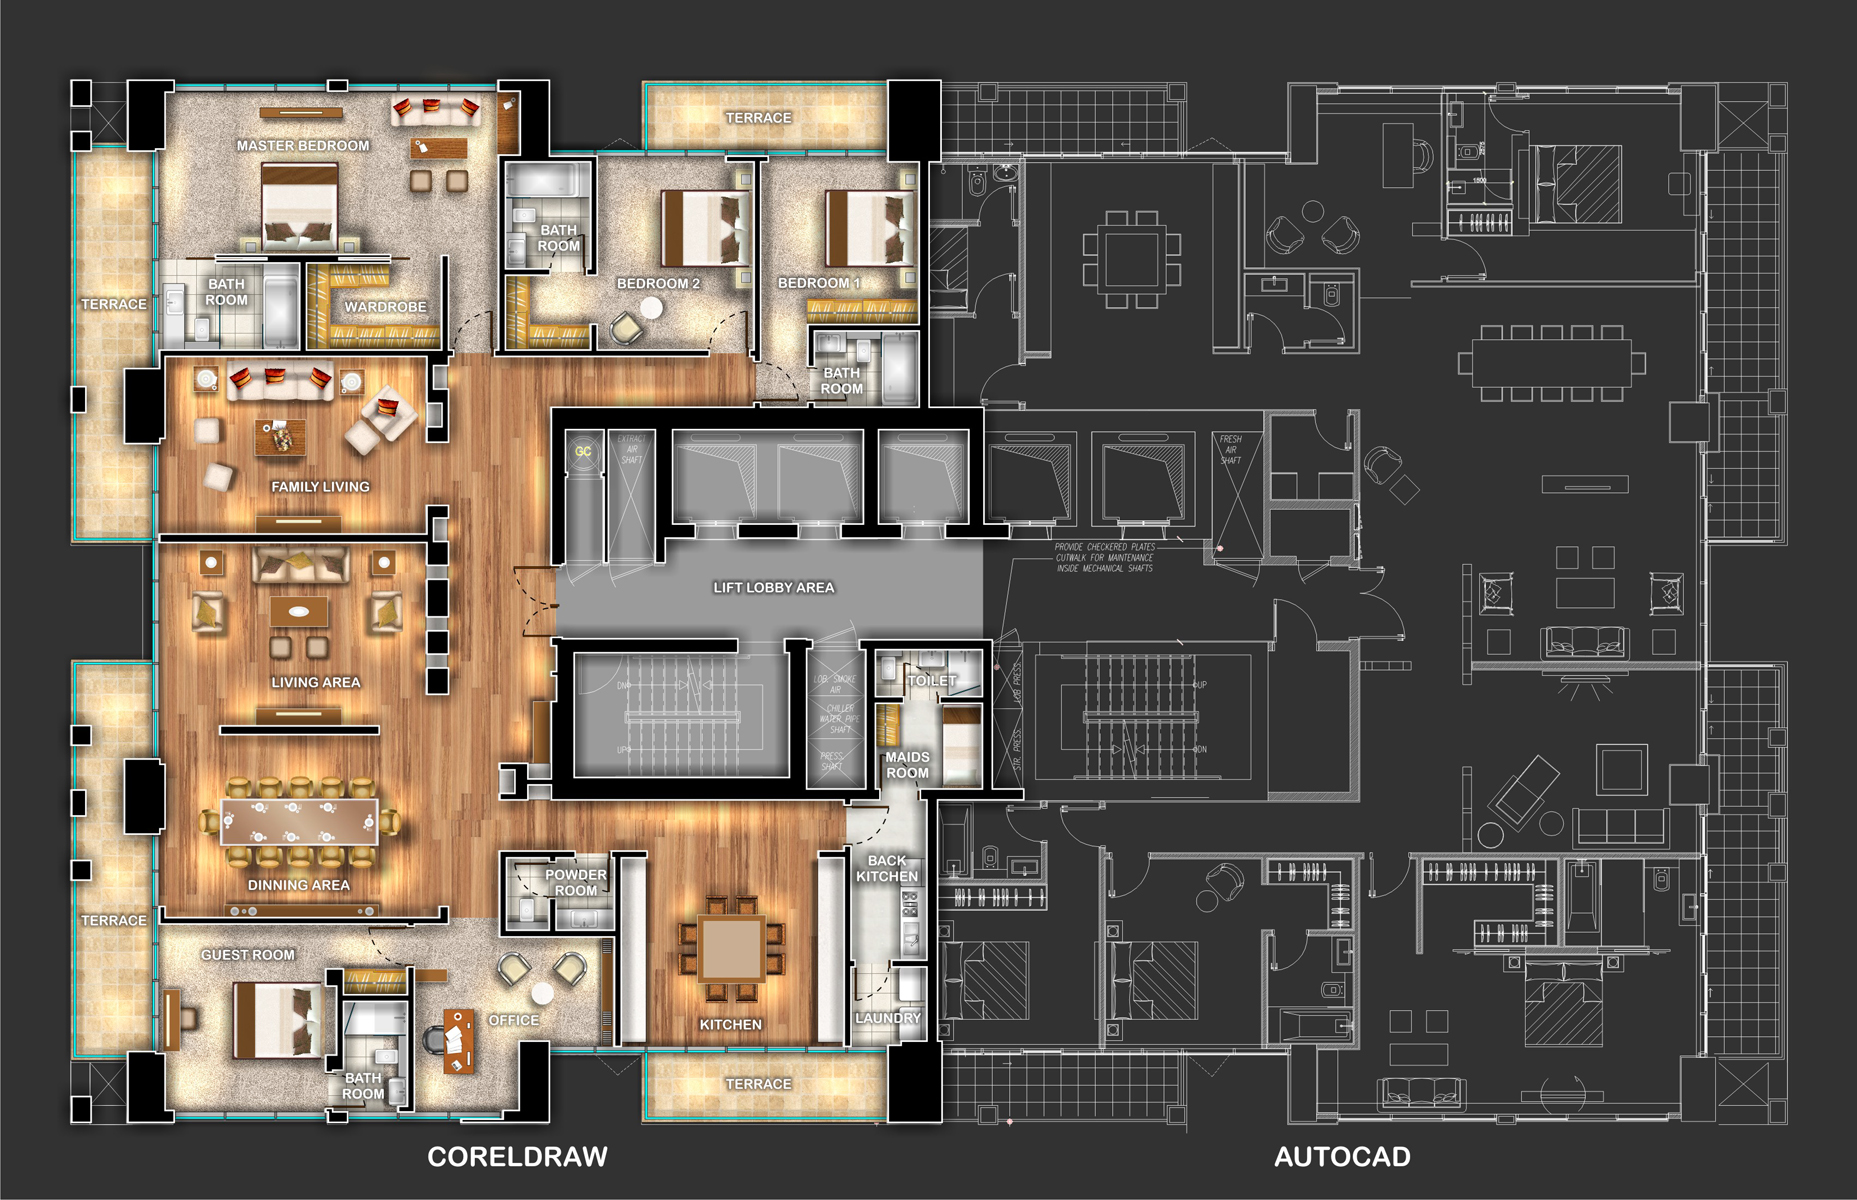 Penthouse Layout Zdesign S Gallery Galleries Coreldraw Community